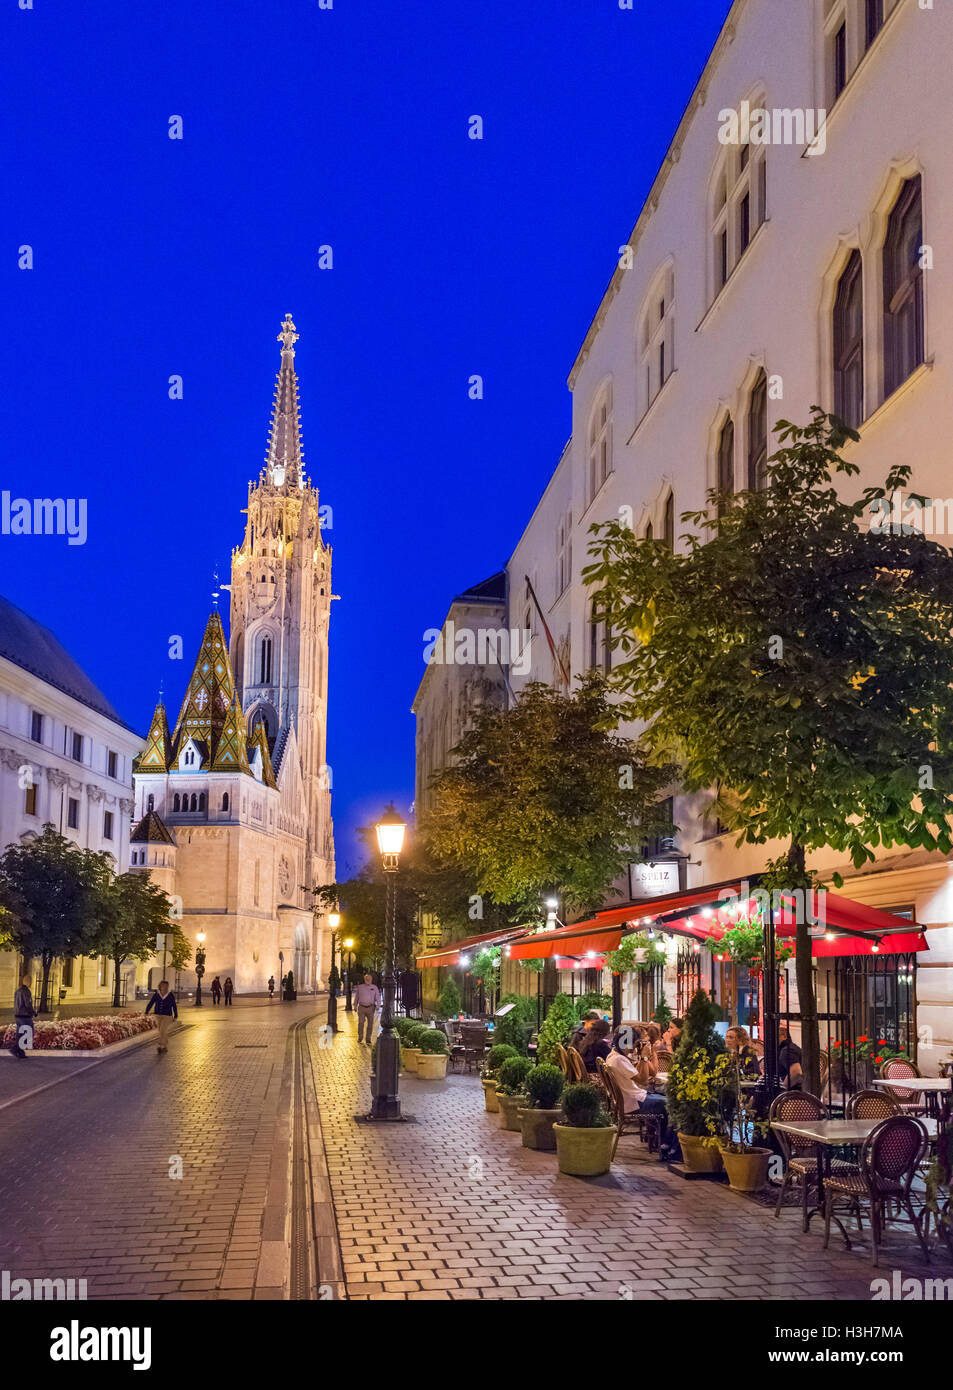 Restaurant on Hess András tér at night, looking towards Matthias Church, Buda Castle district, Castle - Stock Image